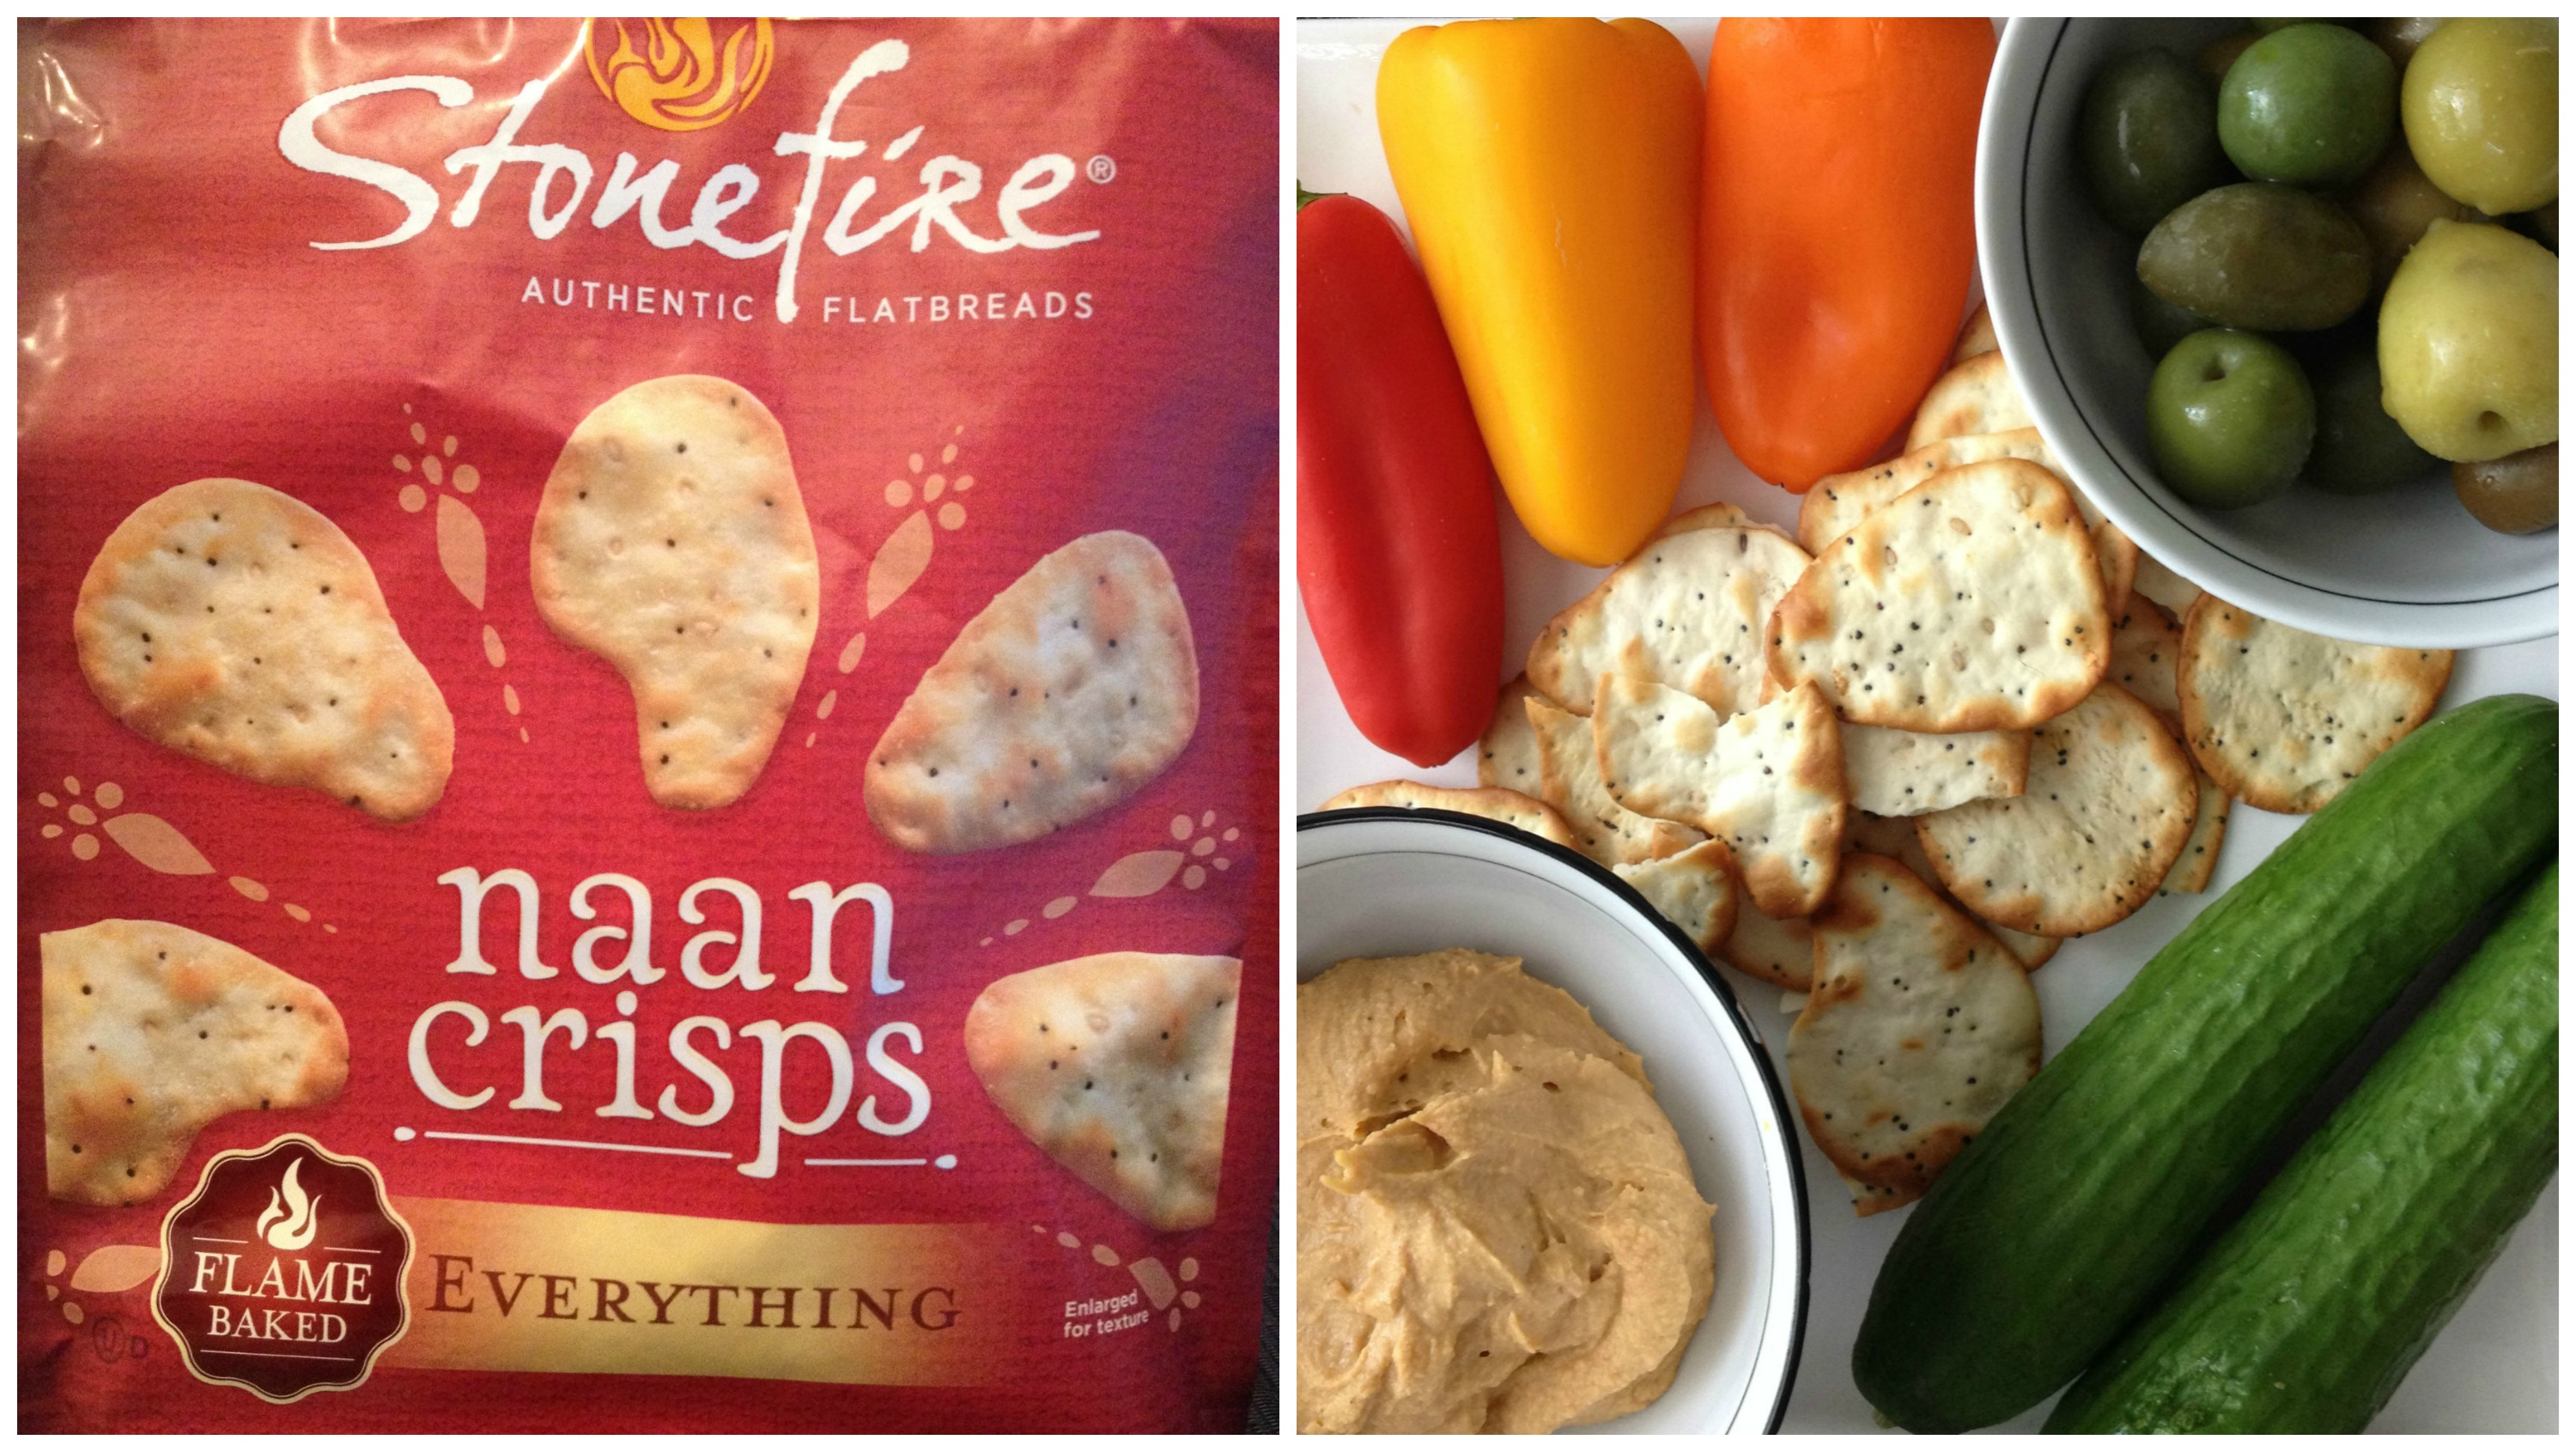 Inspiring Kitchen stonefire chips and dip